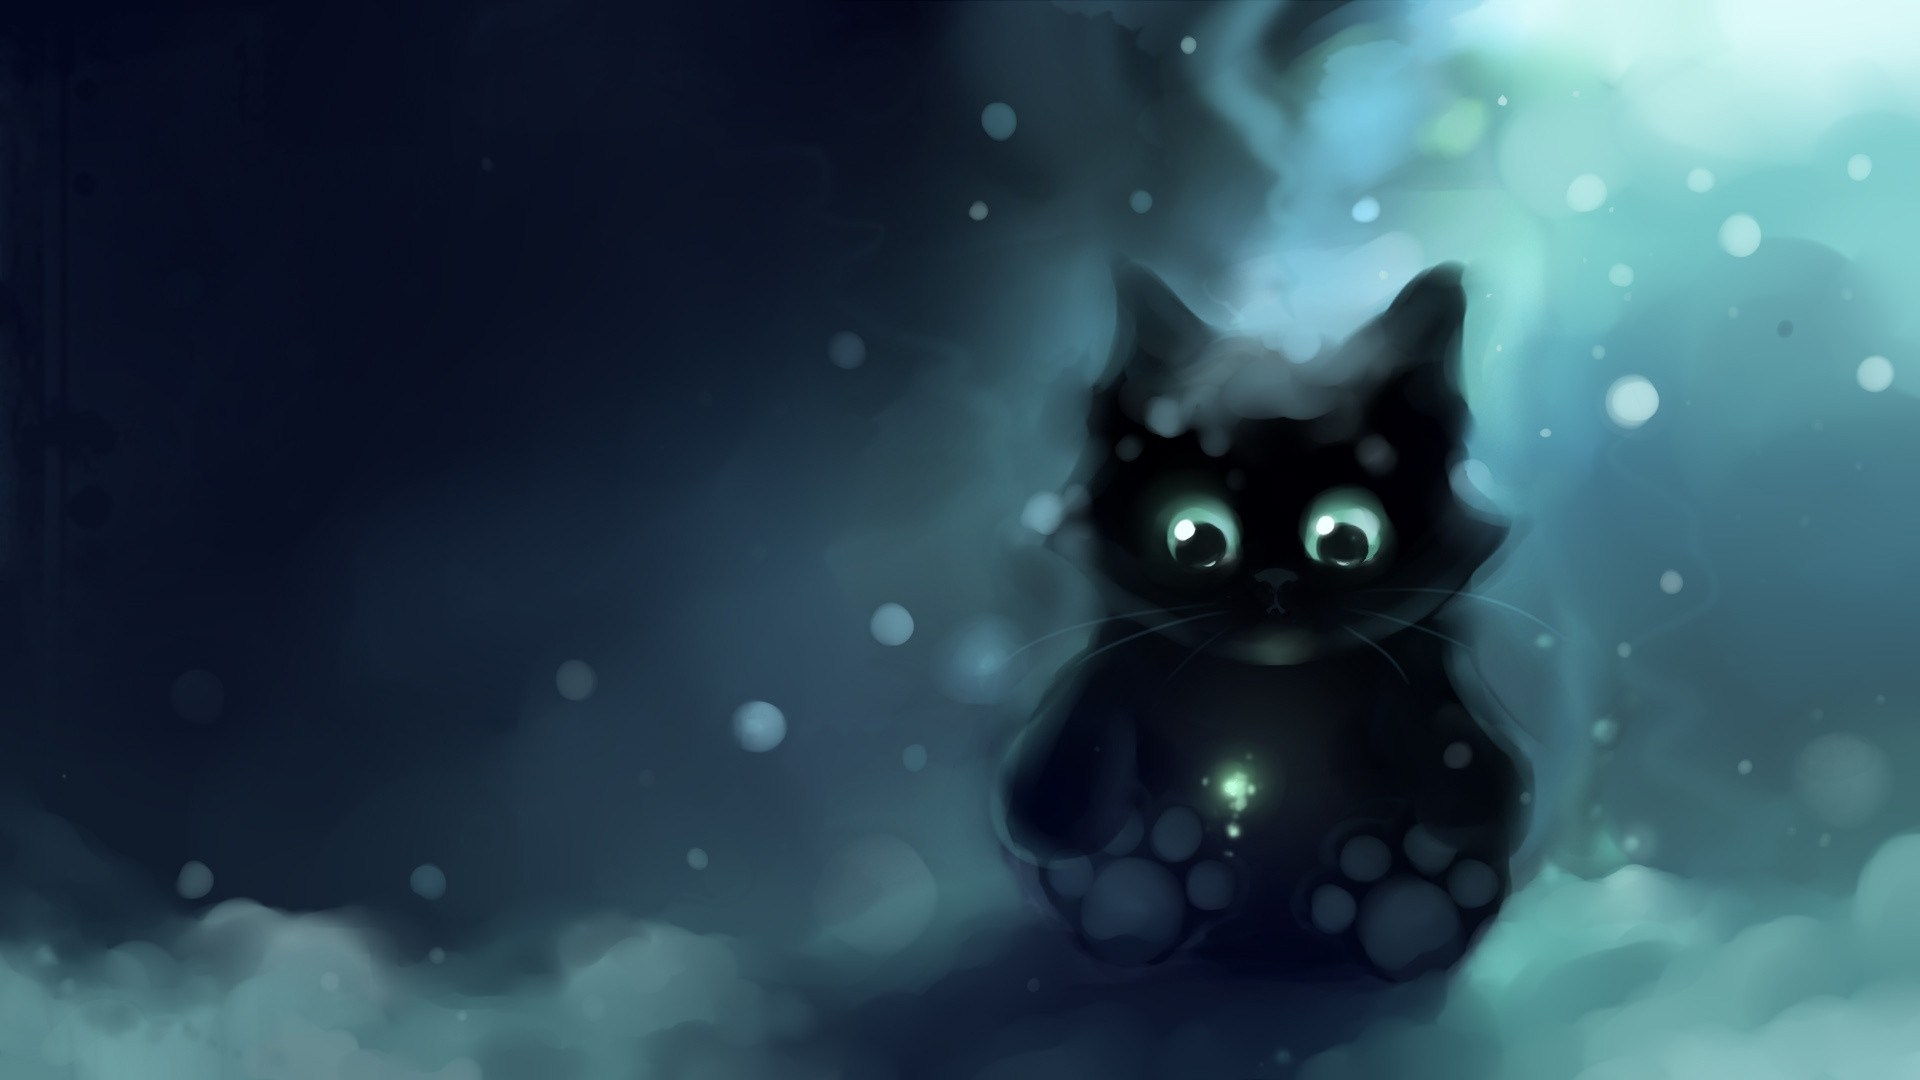 Drawn wallpaper awesome Black Cat wallpaper #11445 Awesome